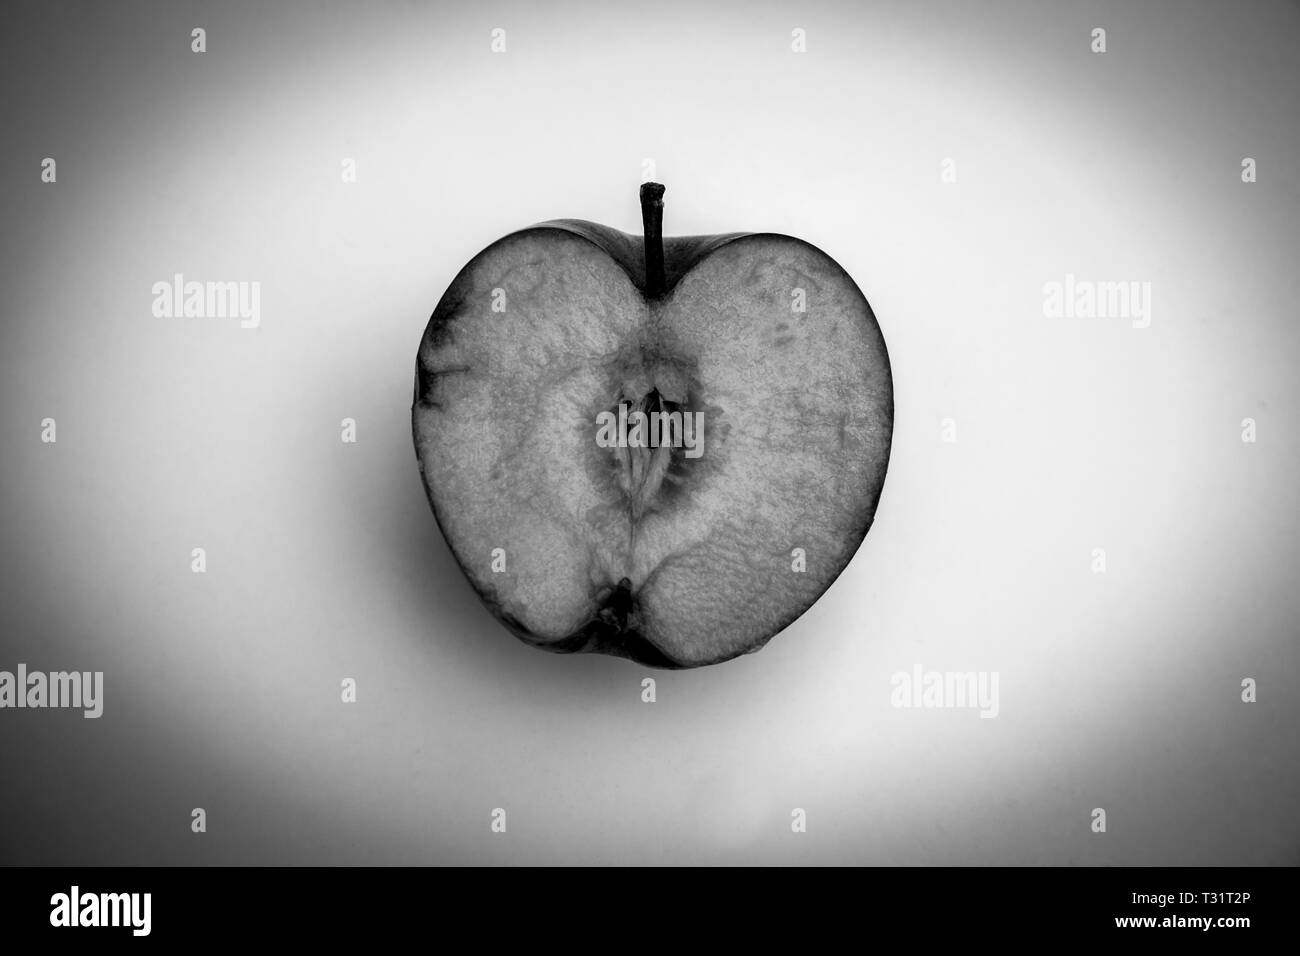 Black and White Apple - Stock Image